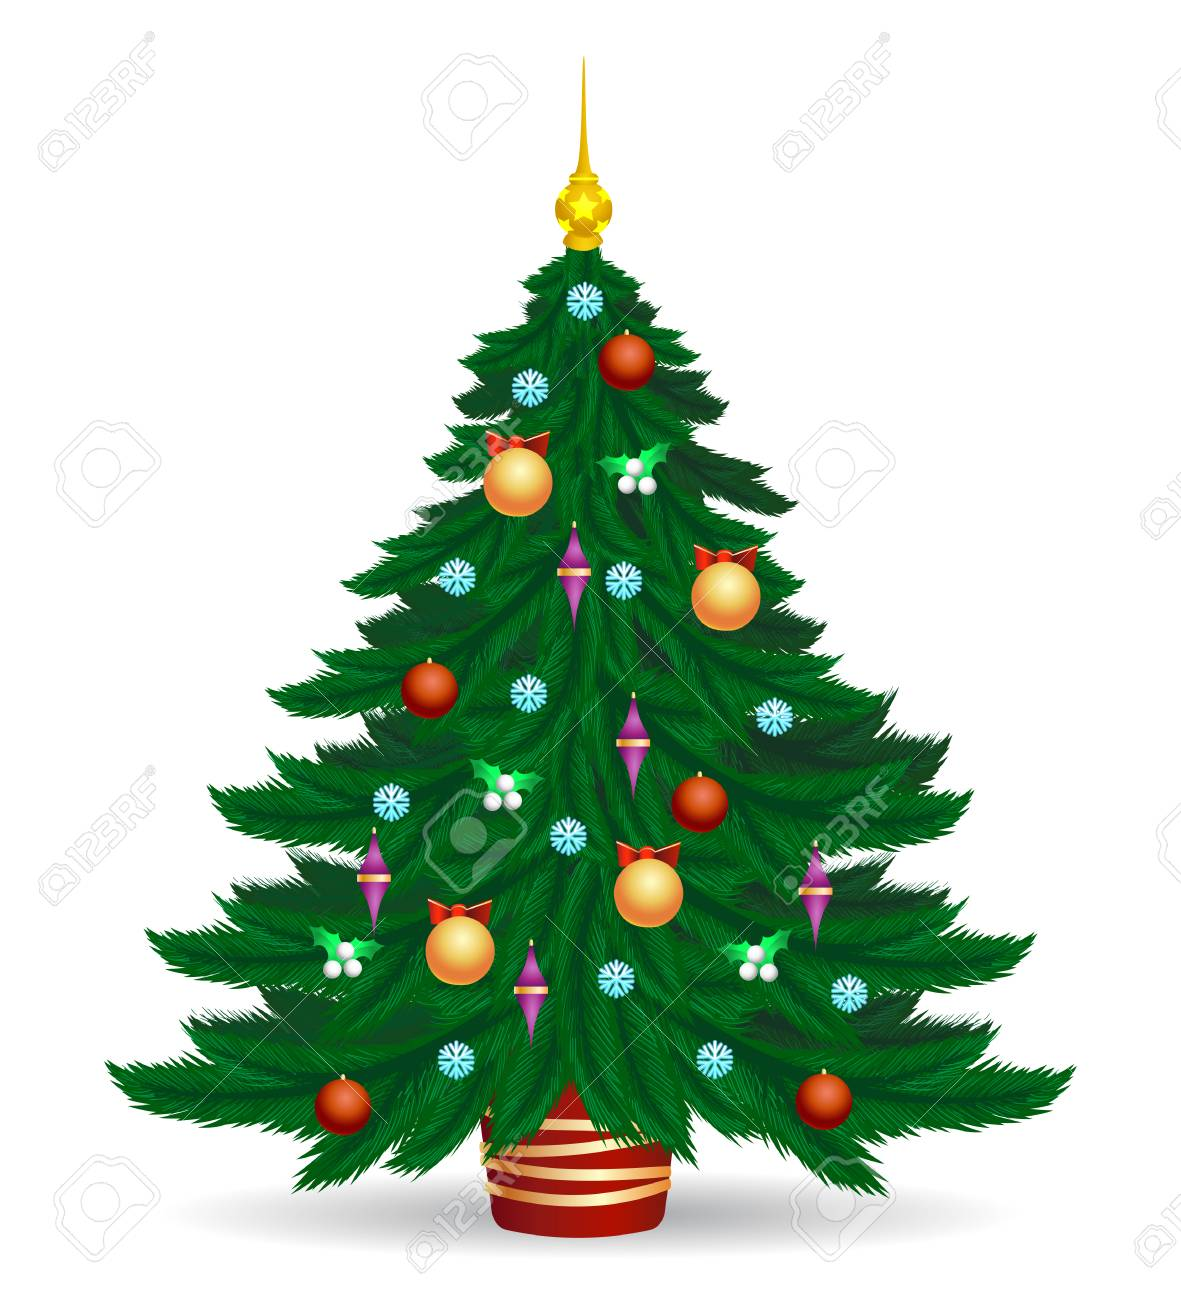 Christmas Tree Vector.Stock Illustration